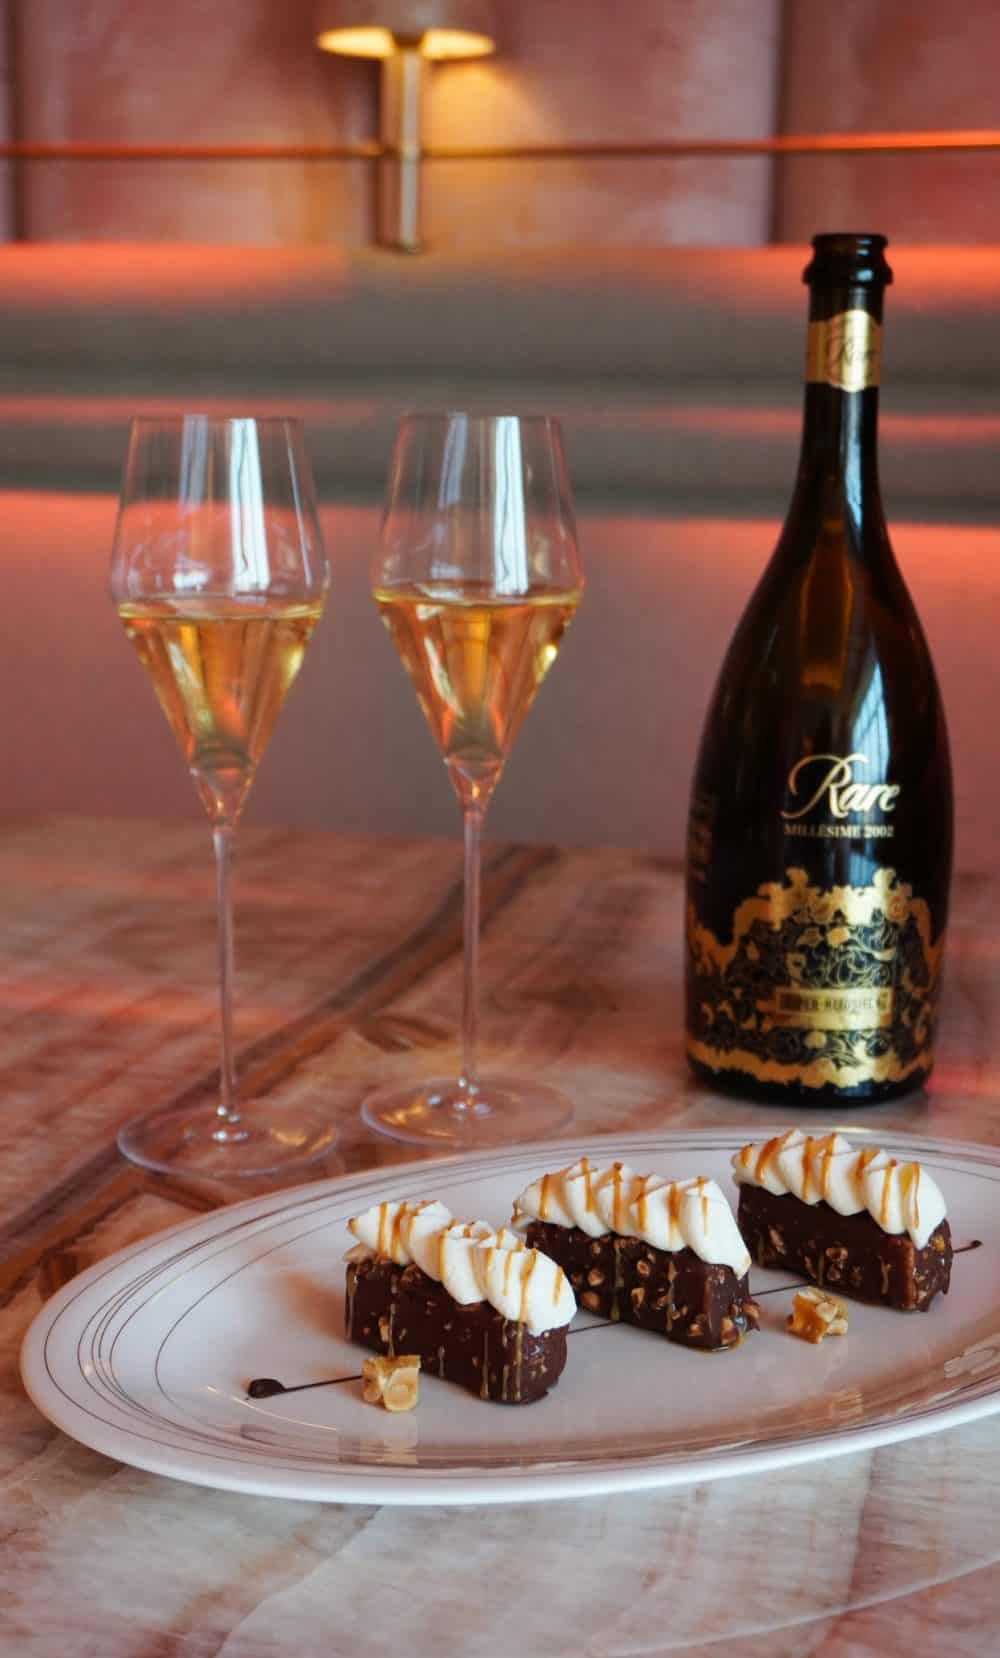 champagne flutes and bottle next to 3 pieces of chocolate dessert